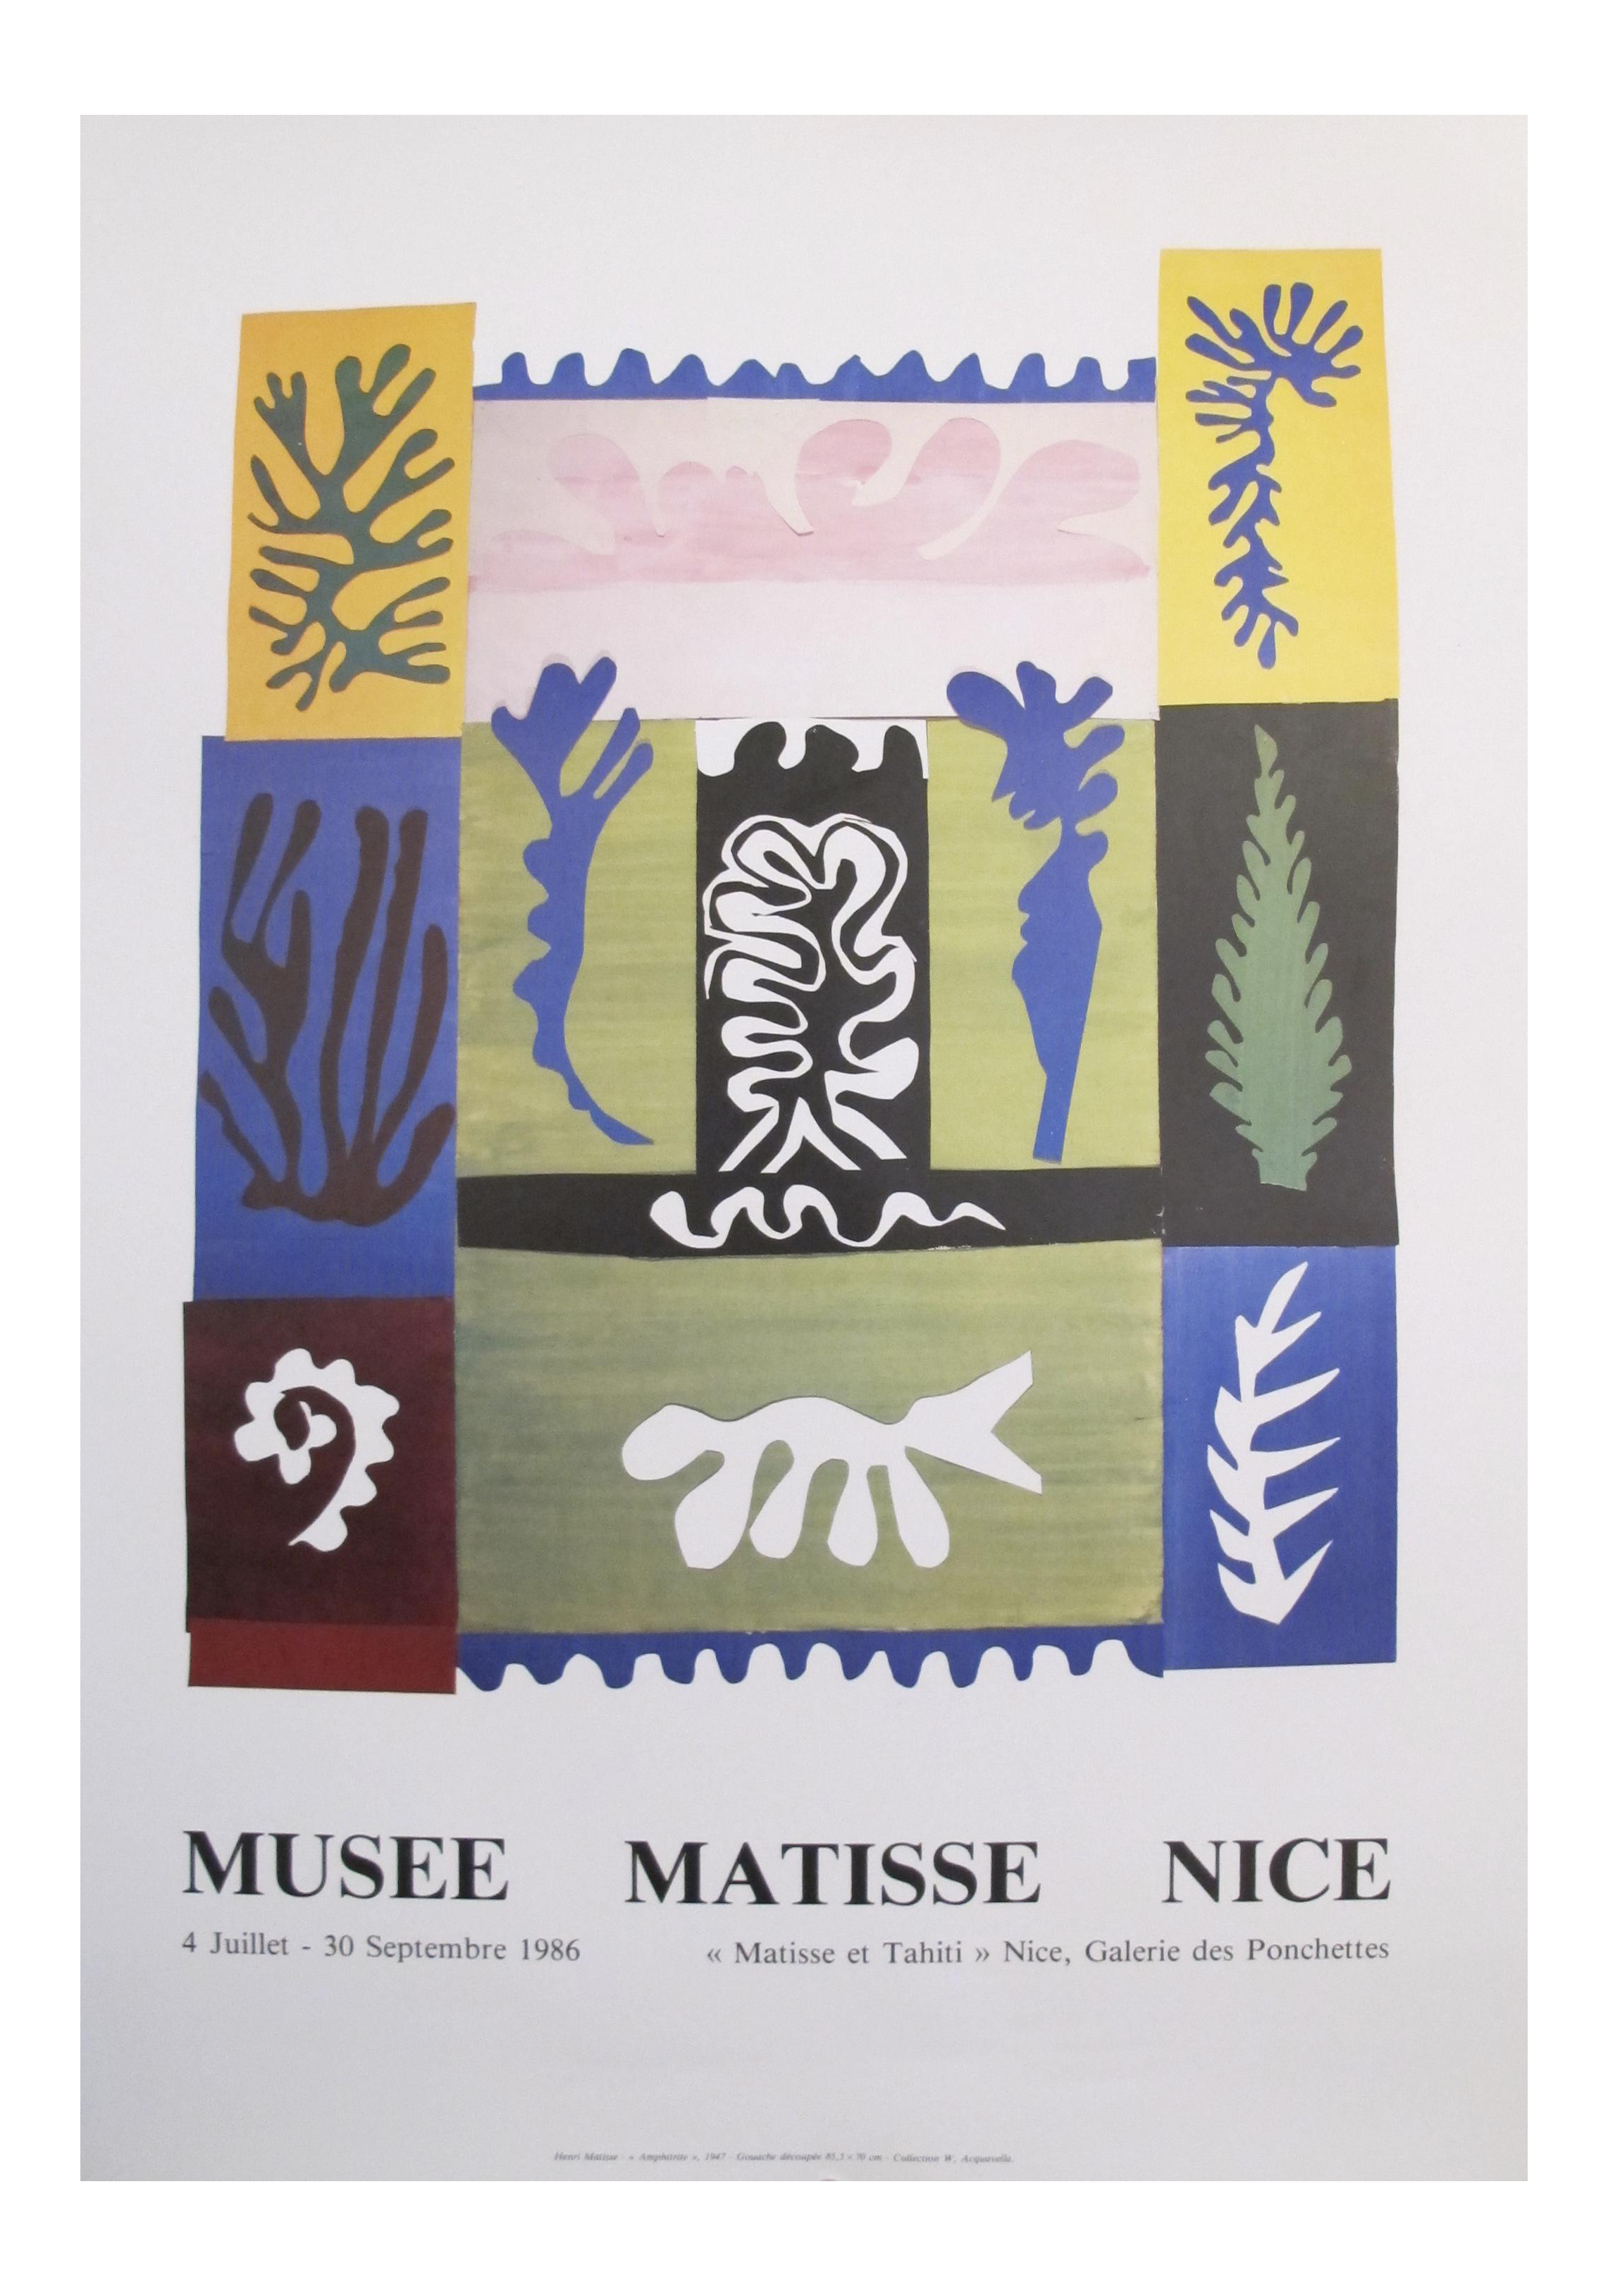 Matisse drawing cut out. Original exhibition poster chairish